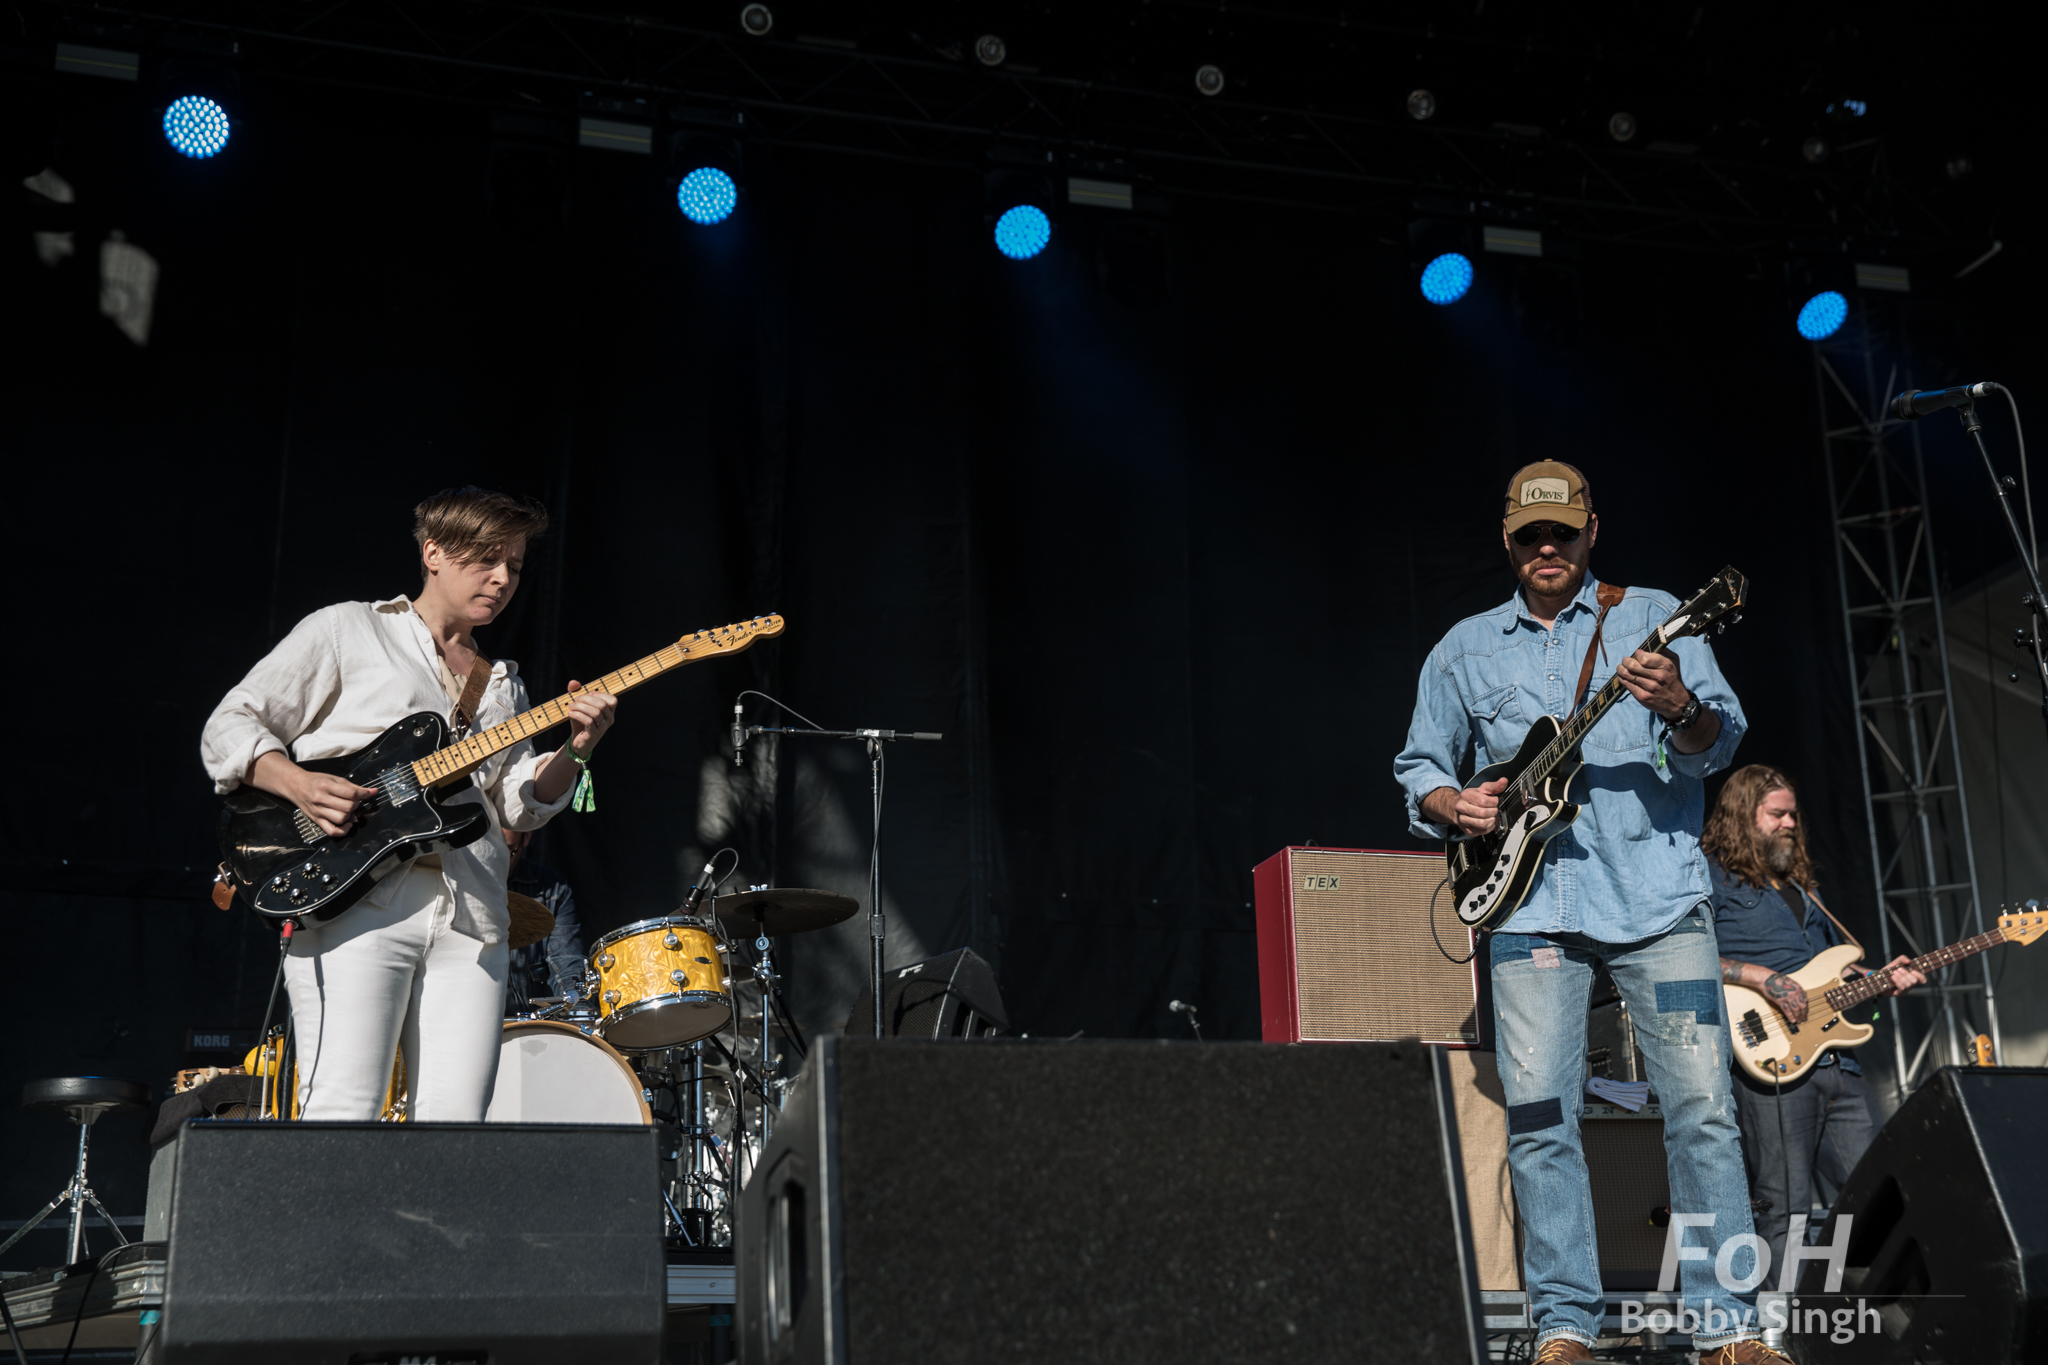 Bahamas performs at the 2018 Field Trip Music & Arts Festival in Toronto